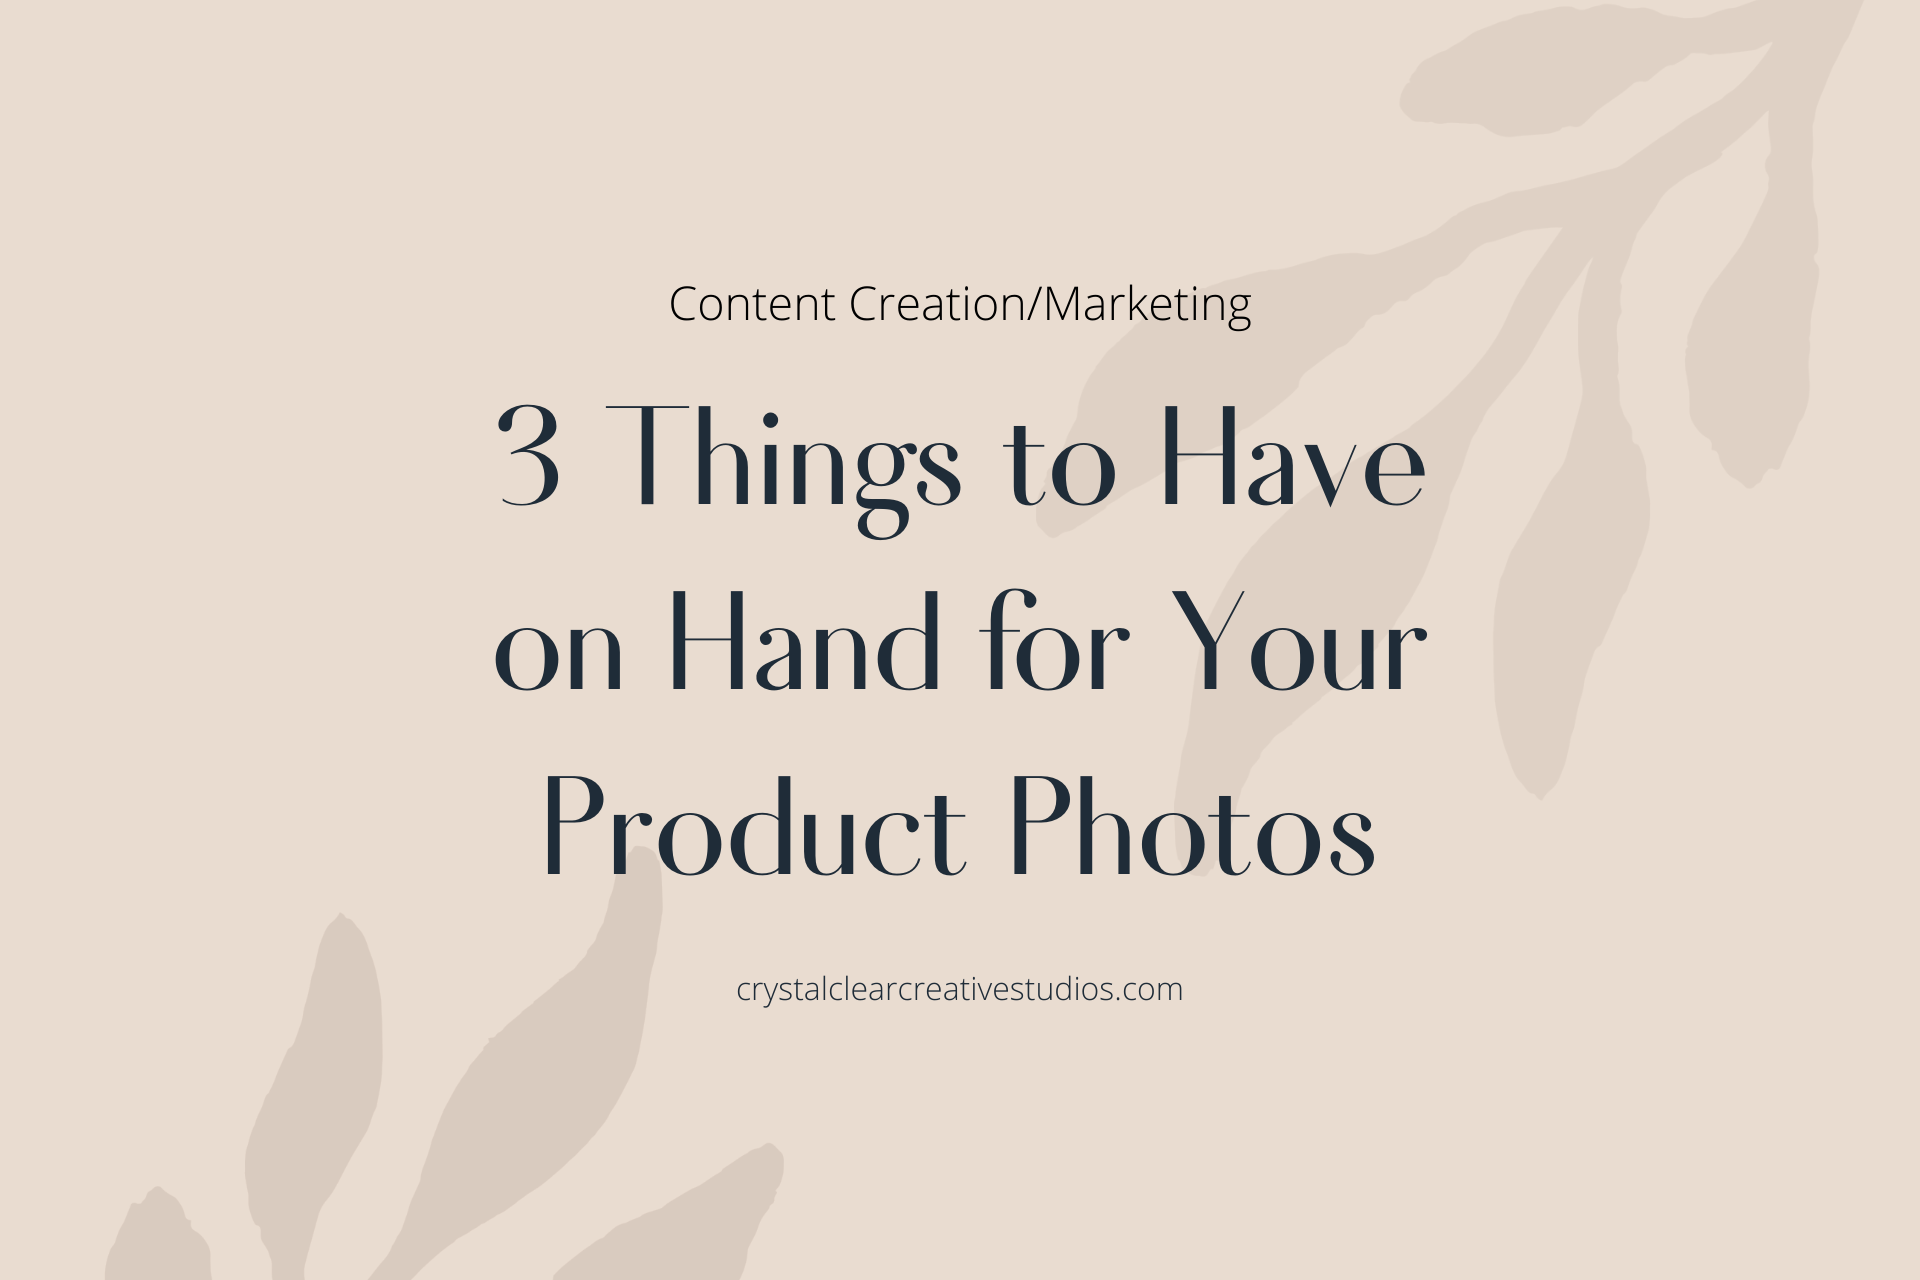 3 Things to Have on Hand for Your Product Photos